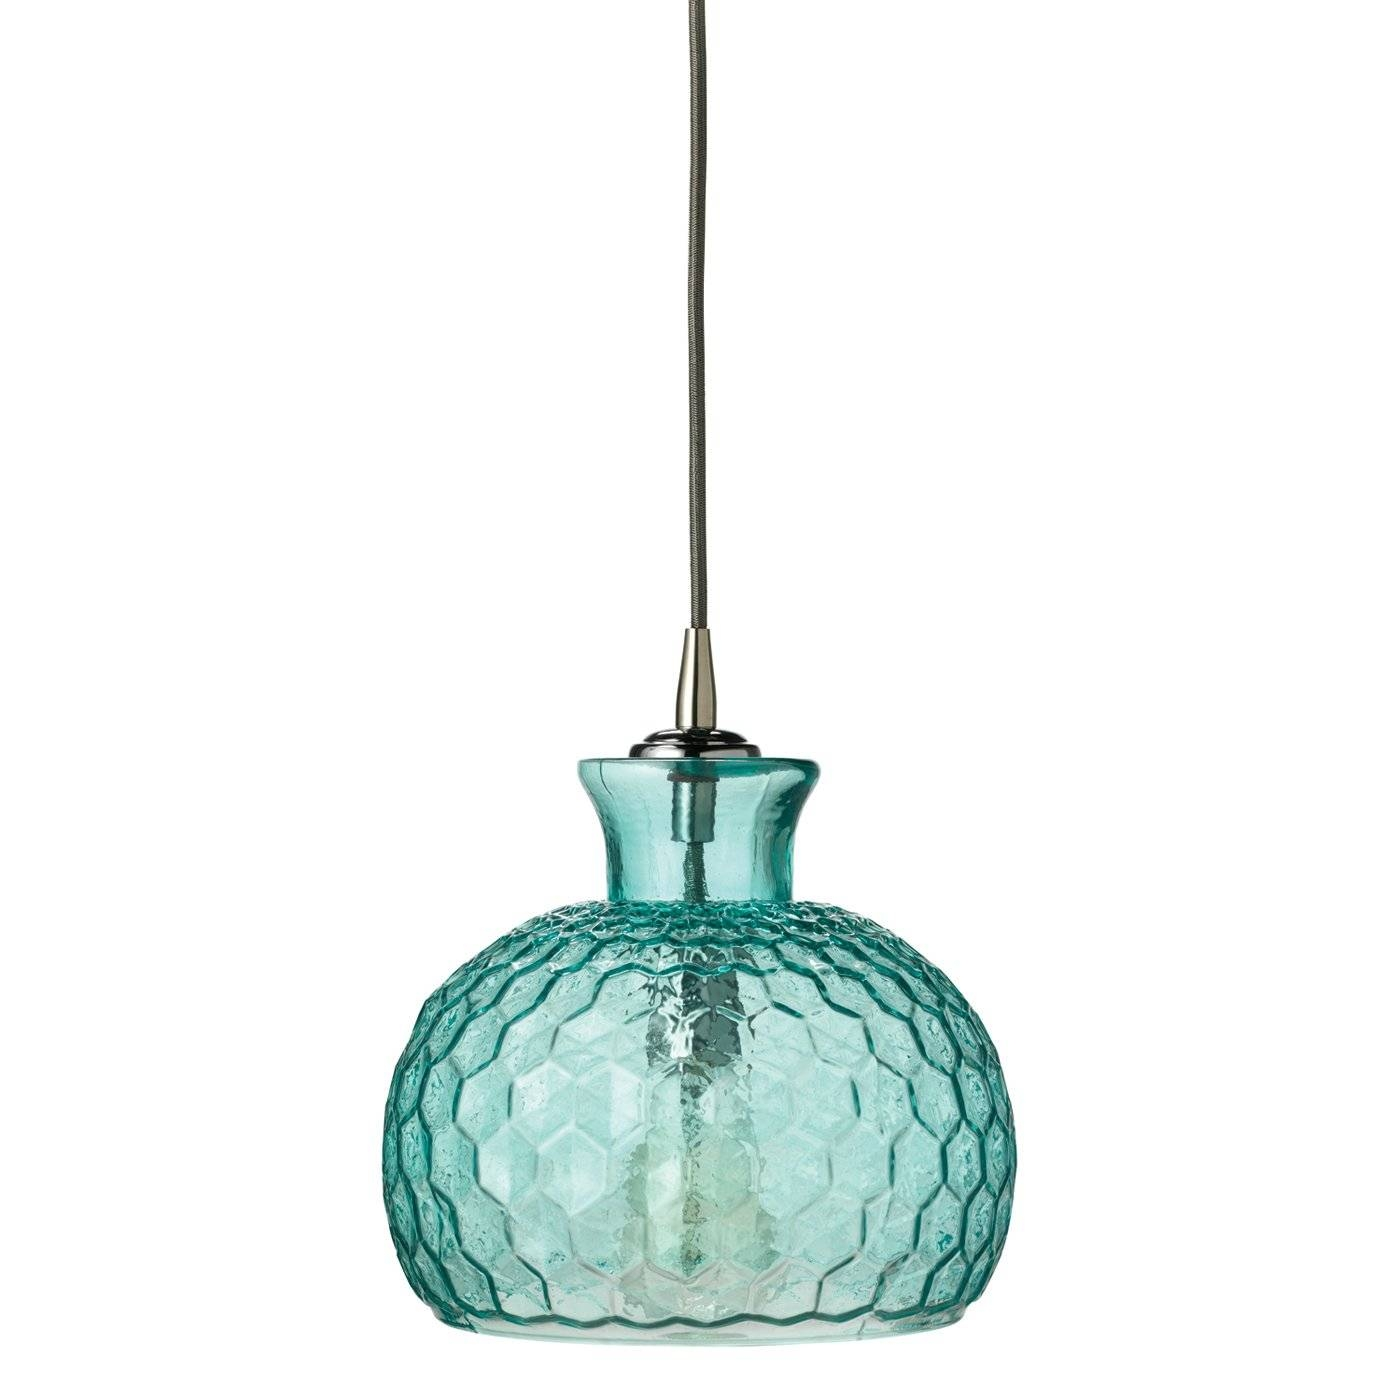 Jamie Young 5Clar-Md 1-Light Clark Pendant | The Mine within Jamie Young Pendant Lights (Image 6 of 15)